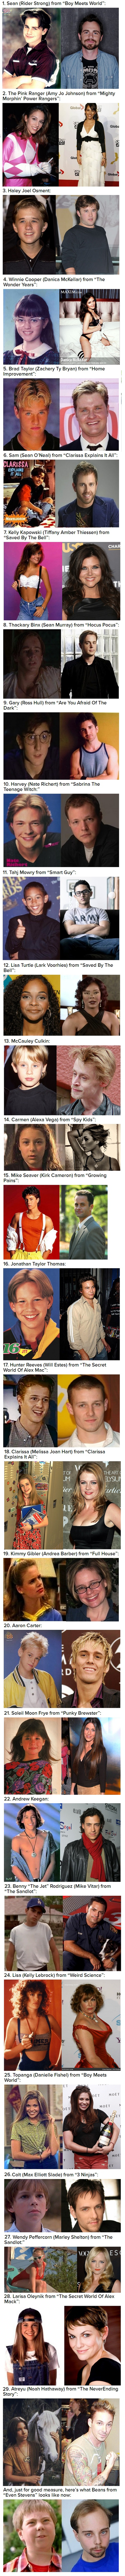 90s stars, then and now.